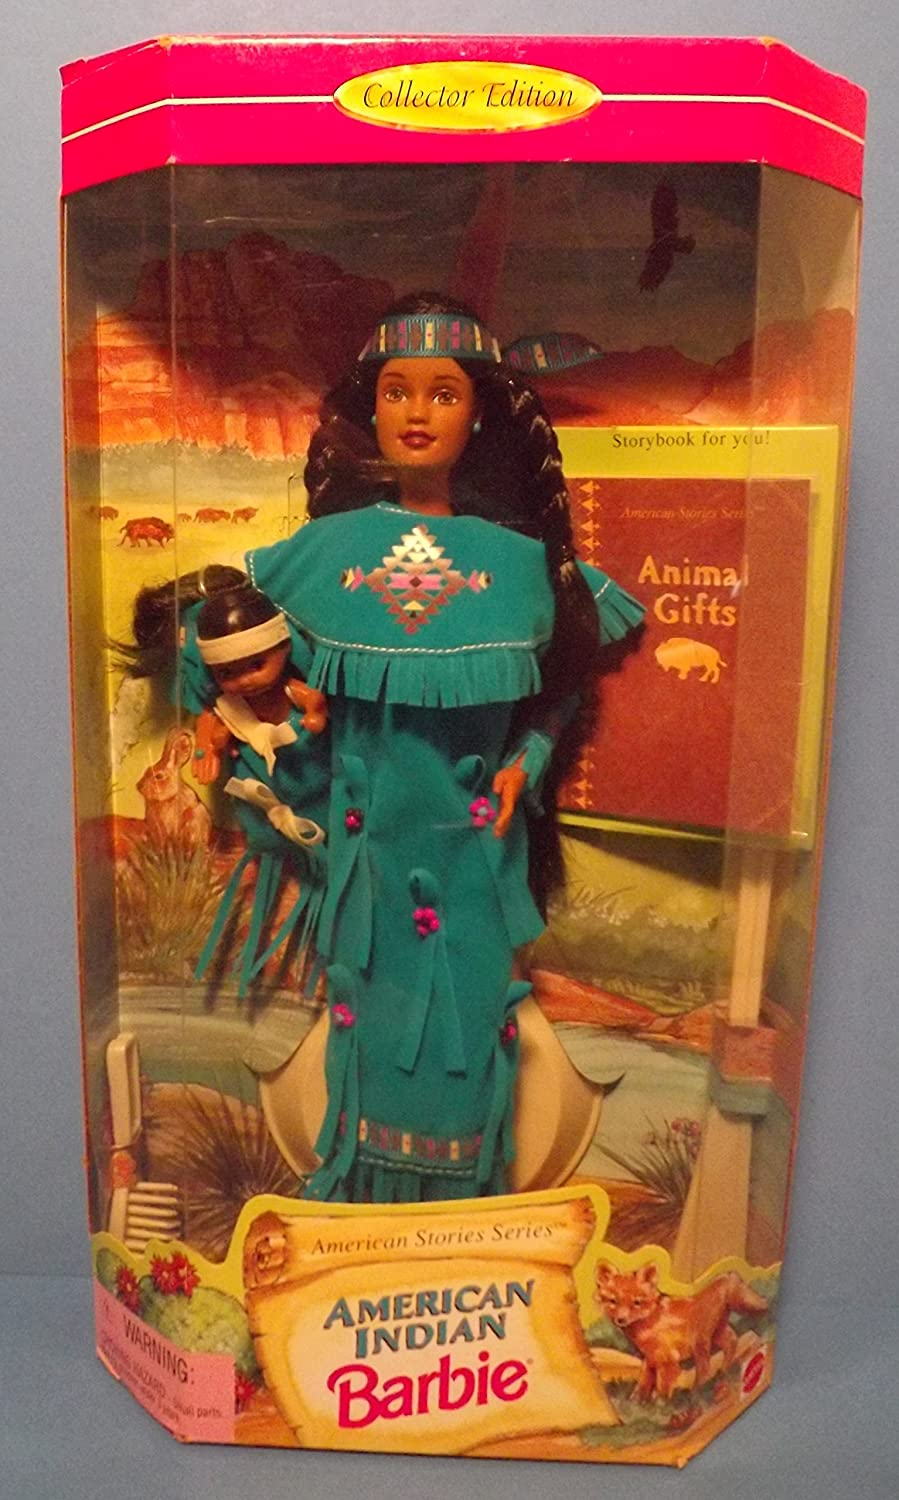 Barbie Collector # 17313 American Indian Barbie mit Baby NRFB als Geschenk